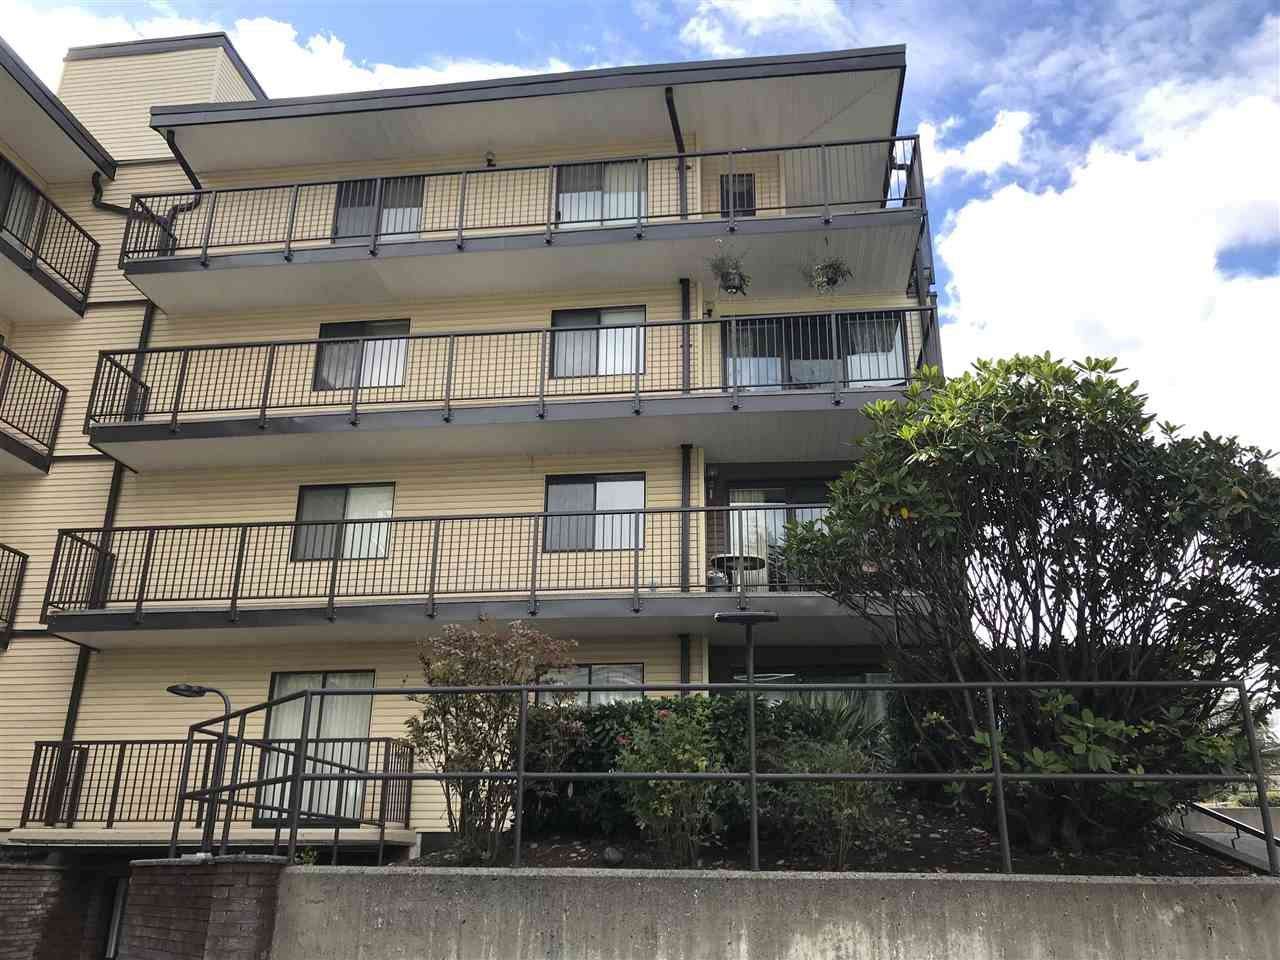 Main Photo: 208 32110 TIMS AVENUE in : Abbotsford West Condo for sale : MLS®# R2415687